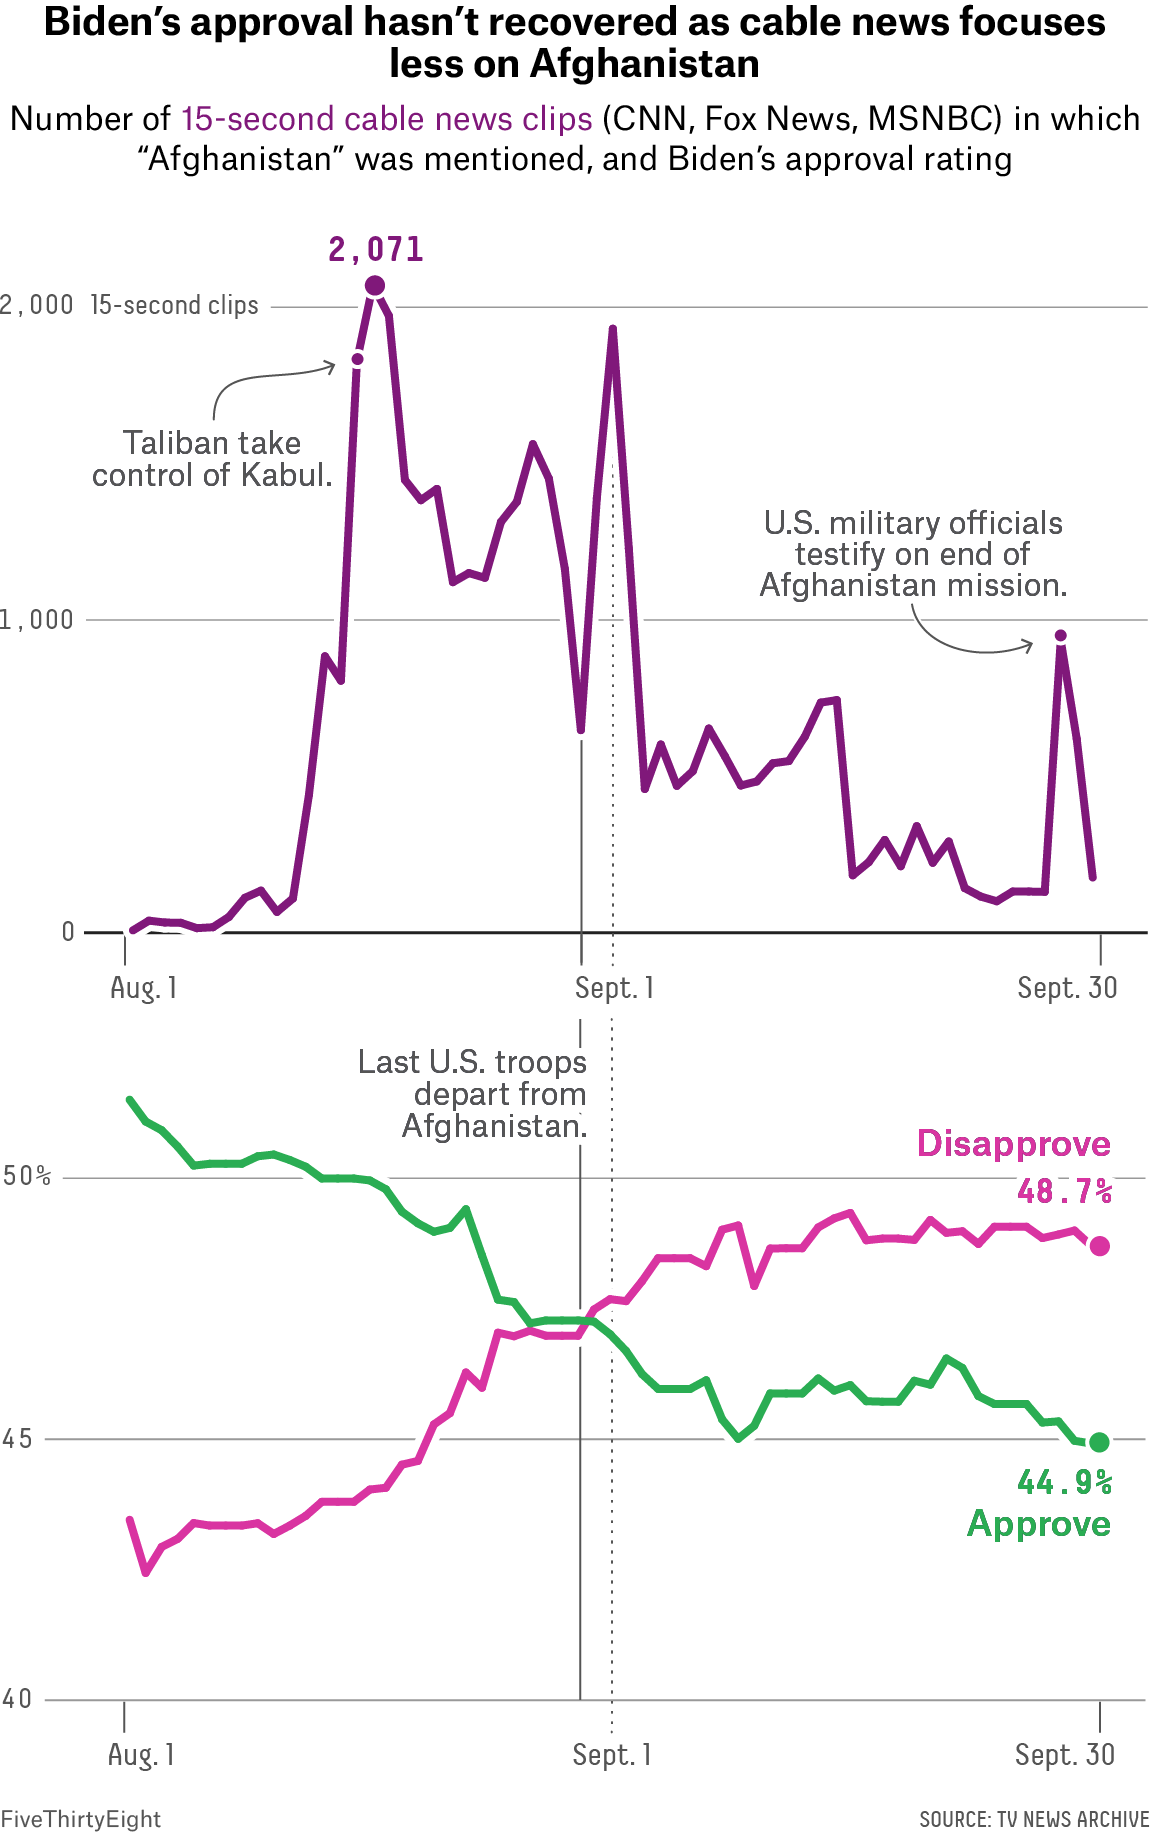 """A line chart showing the number of 15-second cable news clips mentioning """"Afghanistan,"""" with peak mentions in the middle of August and a slow, noisy decline thereafter. A line chart showing a line for Biden's disapproval rating and a line for Biden's approval rating. The lines intersect around the end of August, and by the end of September, 48.7 percent of Americans disapprove of Biden."""